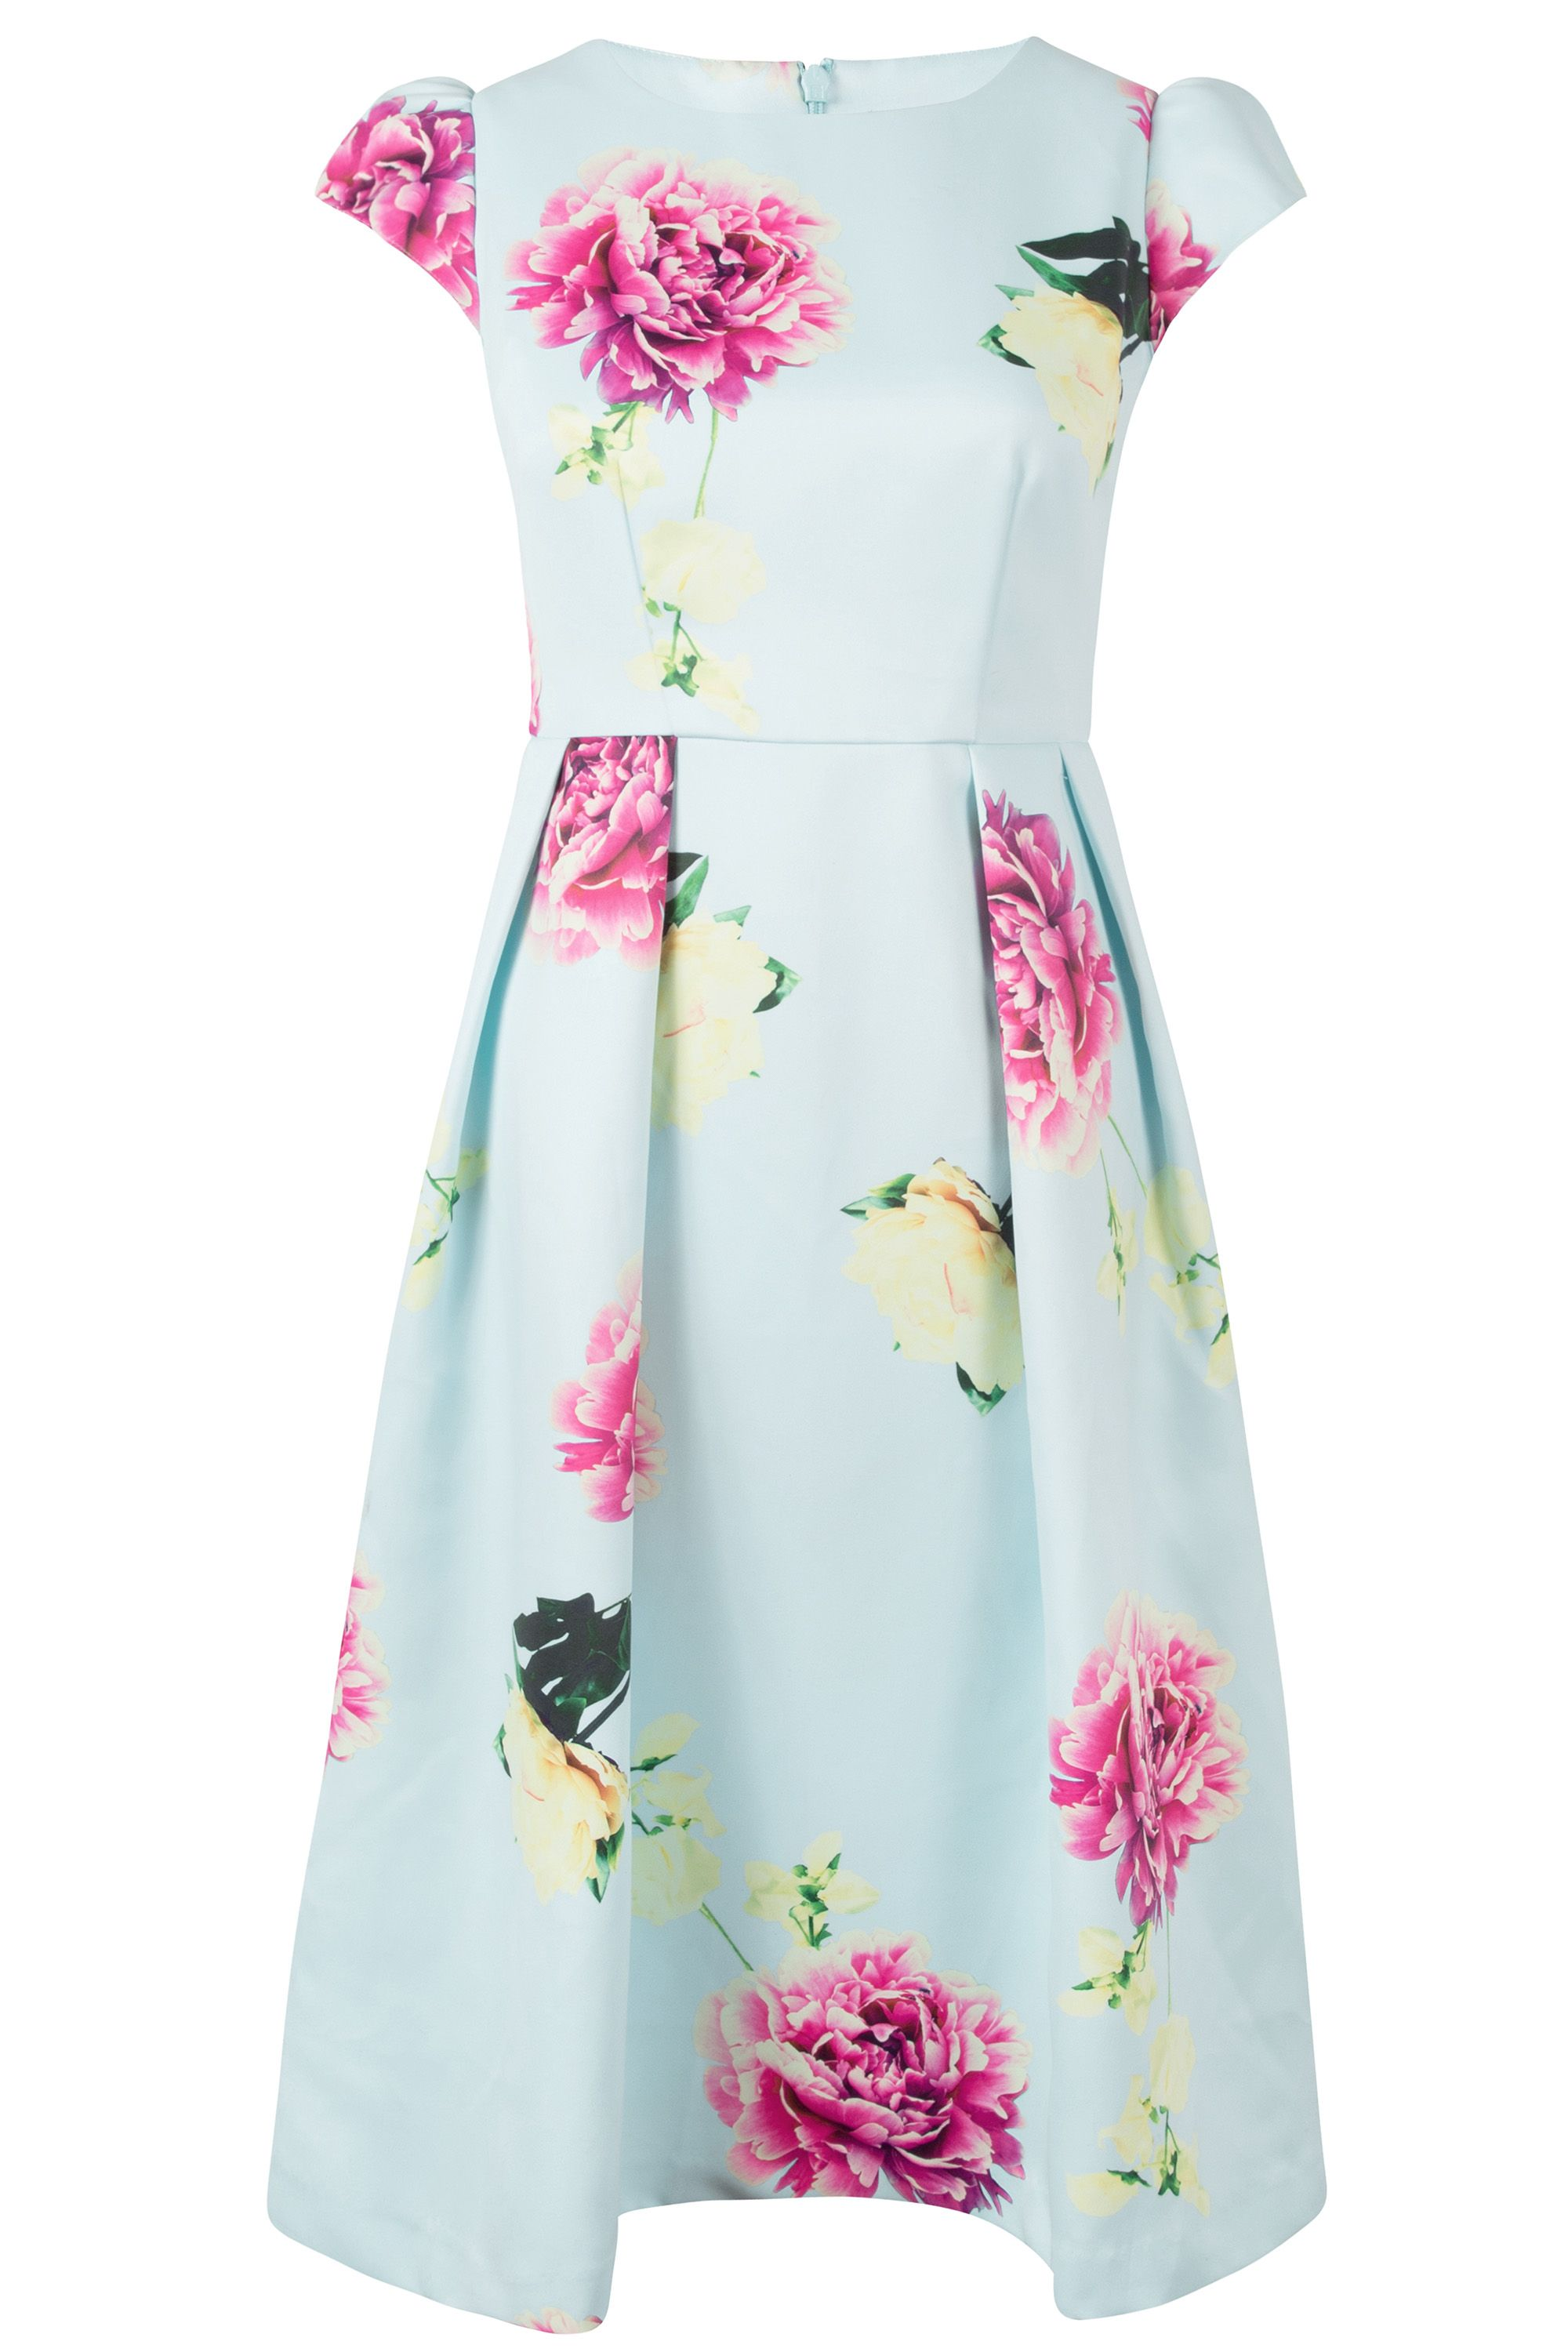 Wolf & Whistle Wolf & Whistle Sweetpea Prom Dress, Multi-Coloured